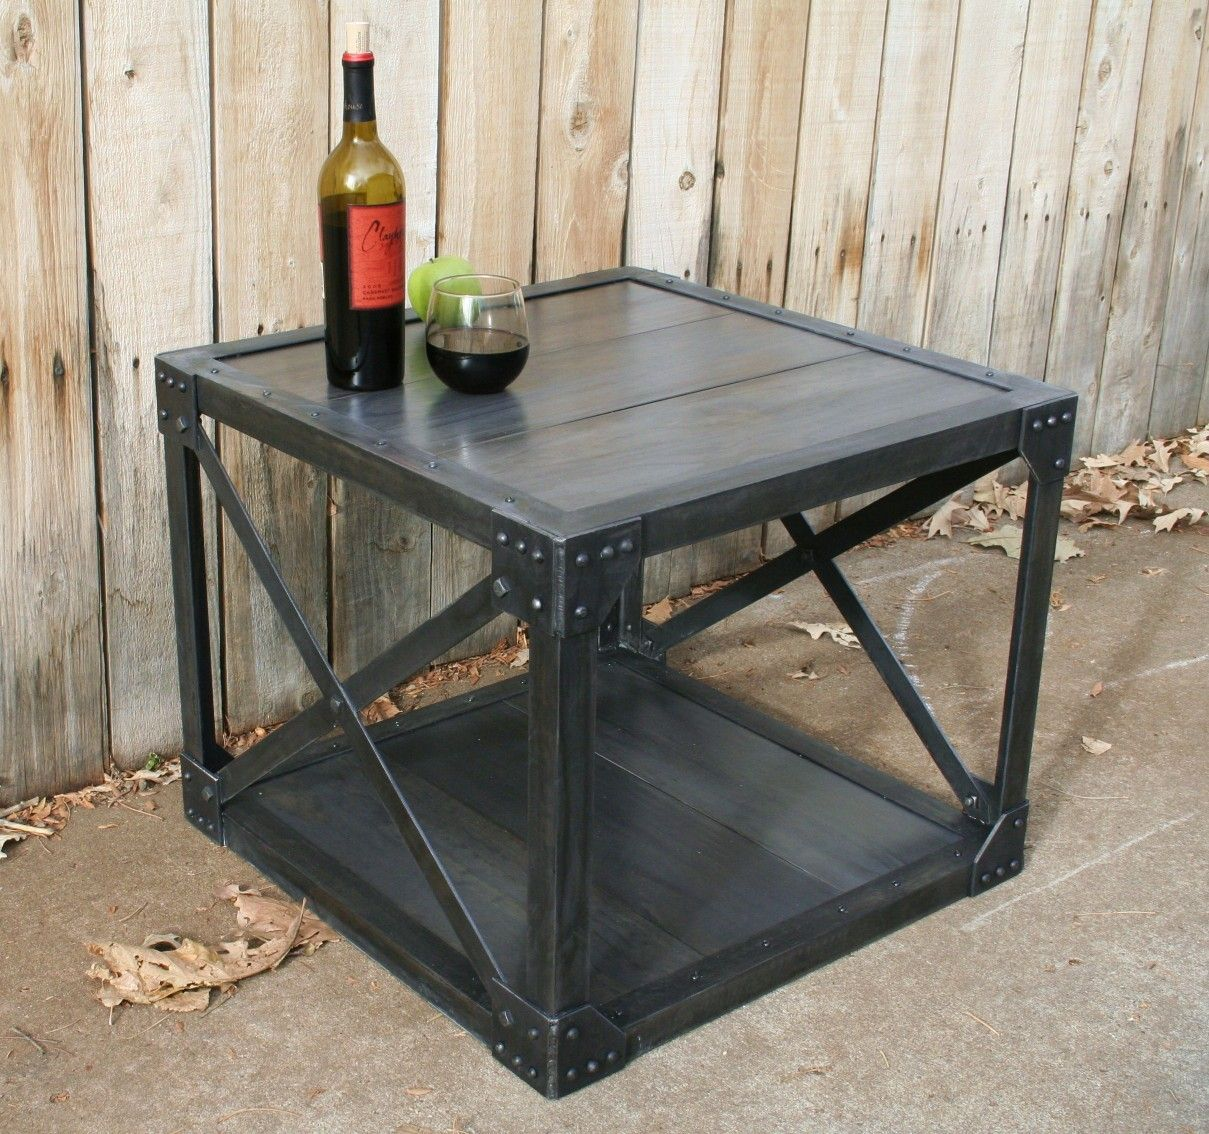 Industrial Unique Metal Designer Coffee Table: Handmade Wood & Scrap Metal Industrial Coffee Table Urban